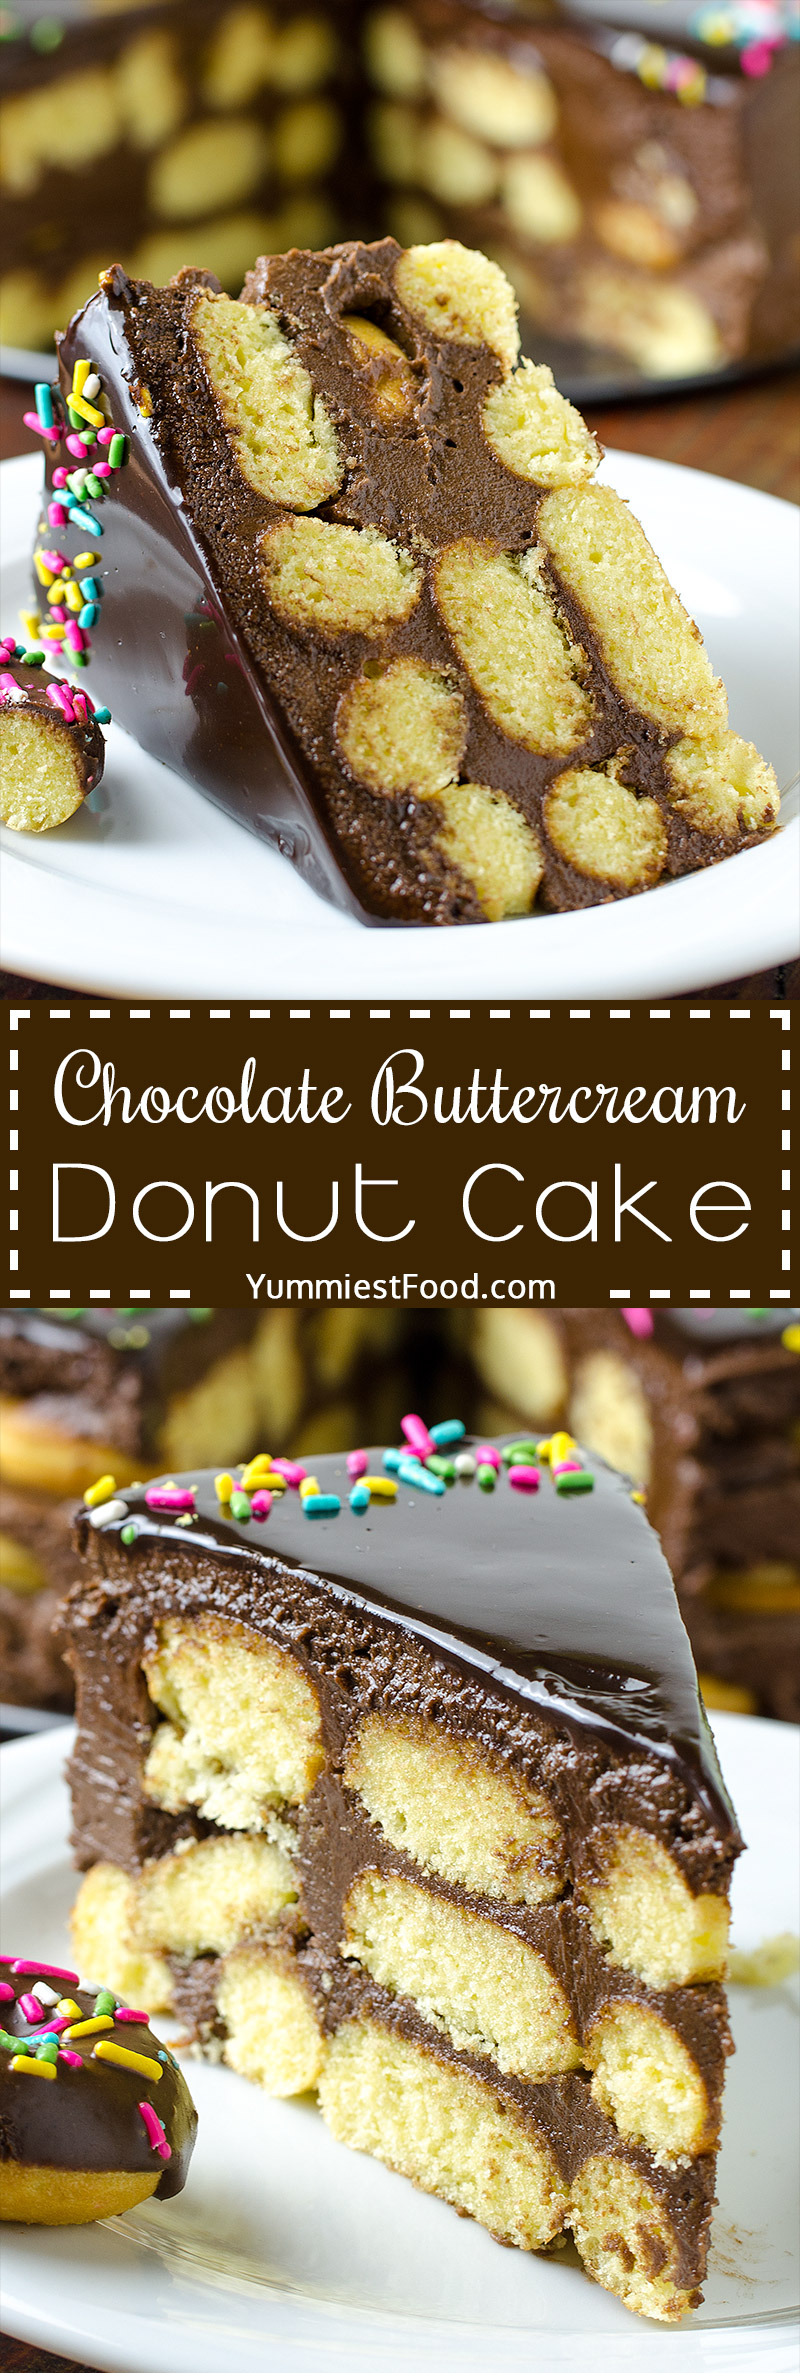 CHOCOLATE BUTTERCREAM DONUT CAKE - Chocolate buttercream and homemade mini donuts